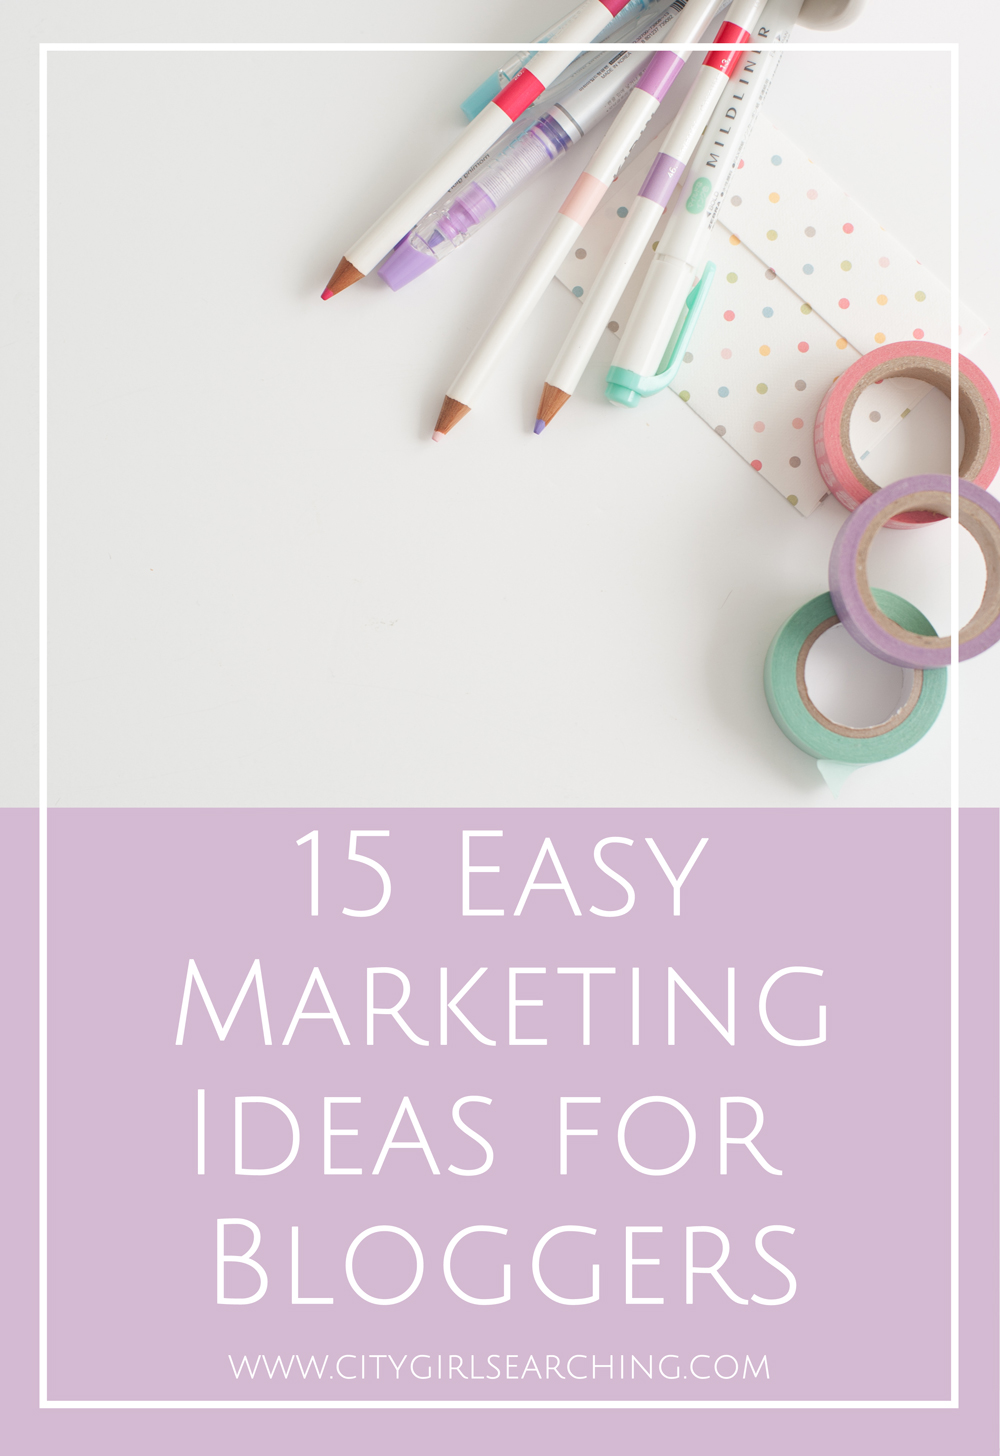 Easy Marketing Ideas for Bloggers